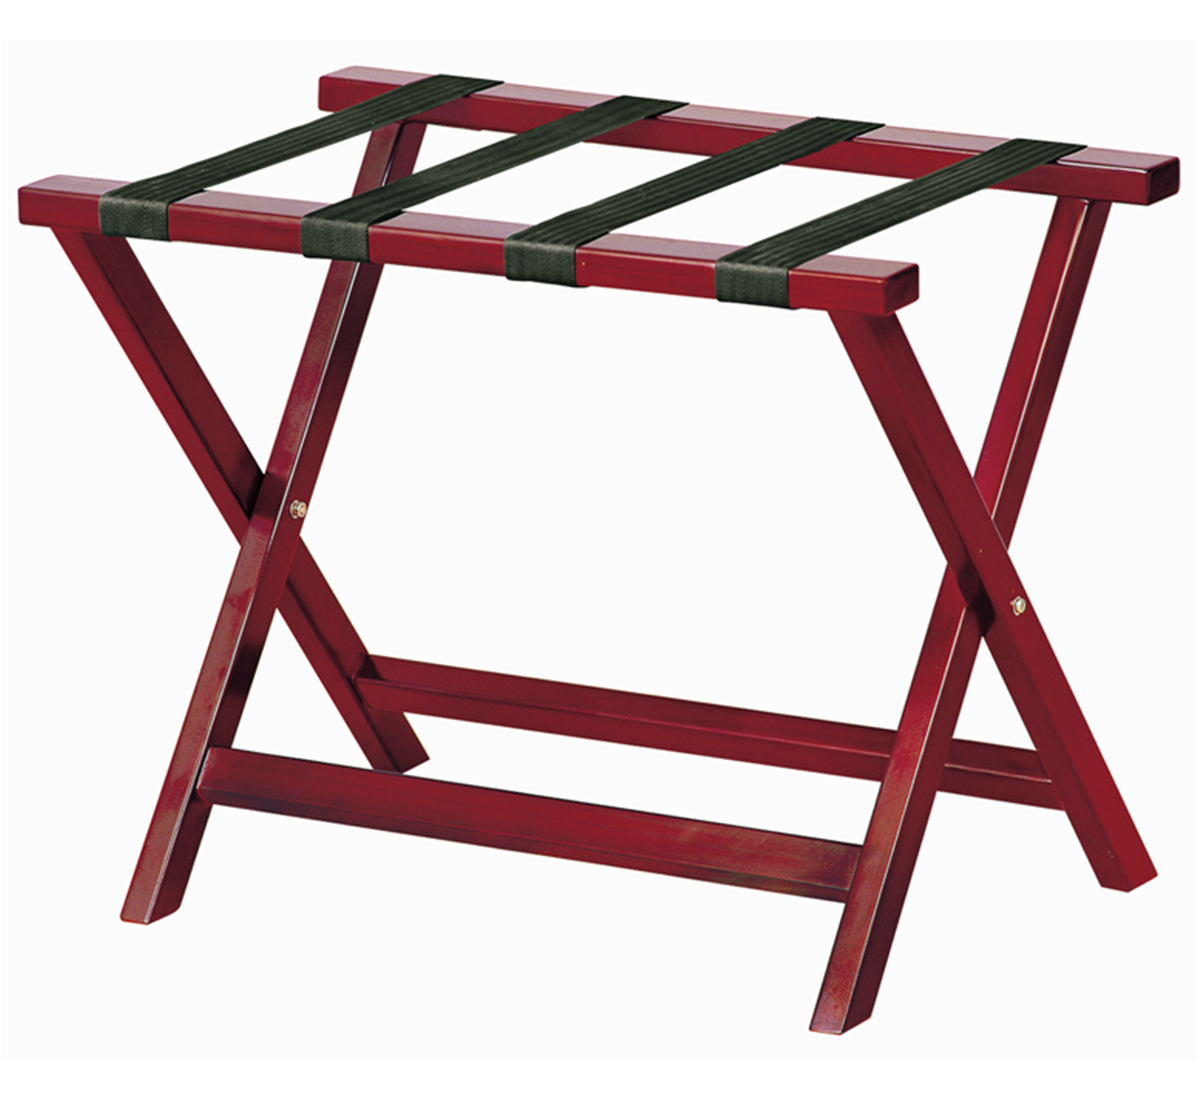 Wooden folding bed room luggage rack (Red cherry)